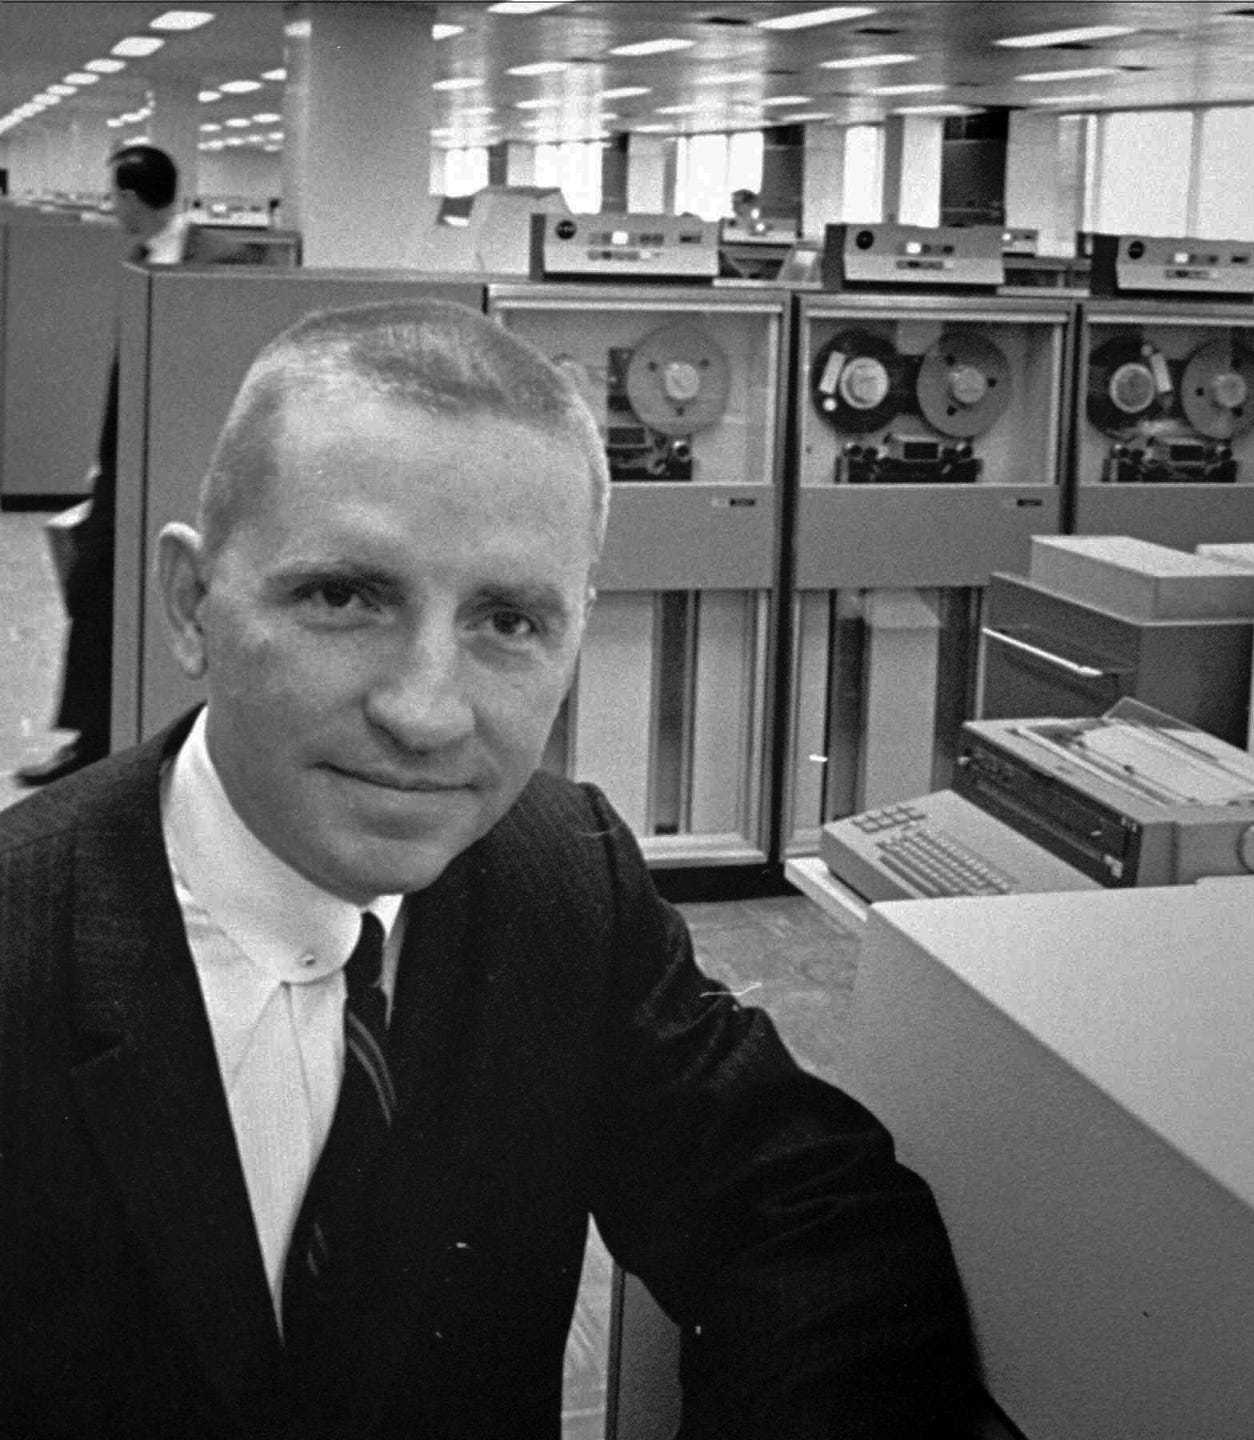 H. Ross Perot is shown in this Oct. 30, 1968, file photo, as Electronic Data Systems Corp. chairman. In 1984 Perot, founder of EDS, sold his company to GM for $2.5 billon. On Monday, Aug. 7, 1995, GM announce it will spin off EDS, making it an independent company.